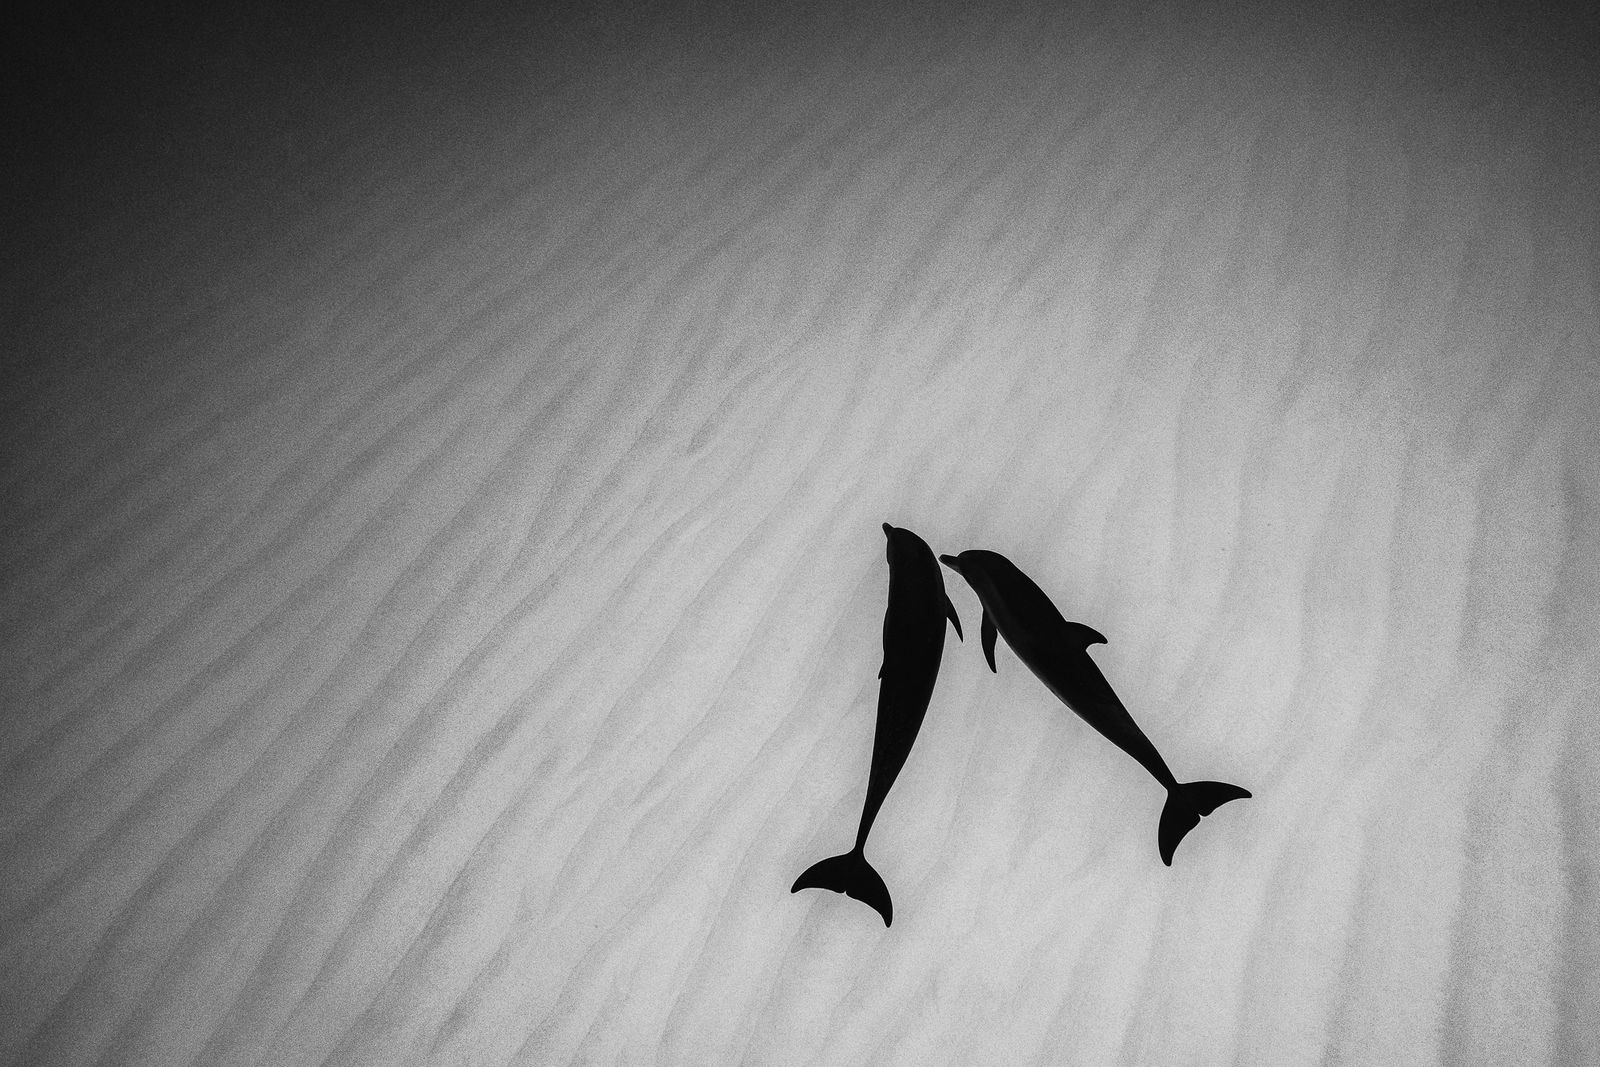 Nature TTL Photographer of the Year 2021 / Underwater